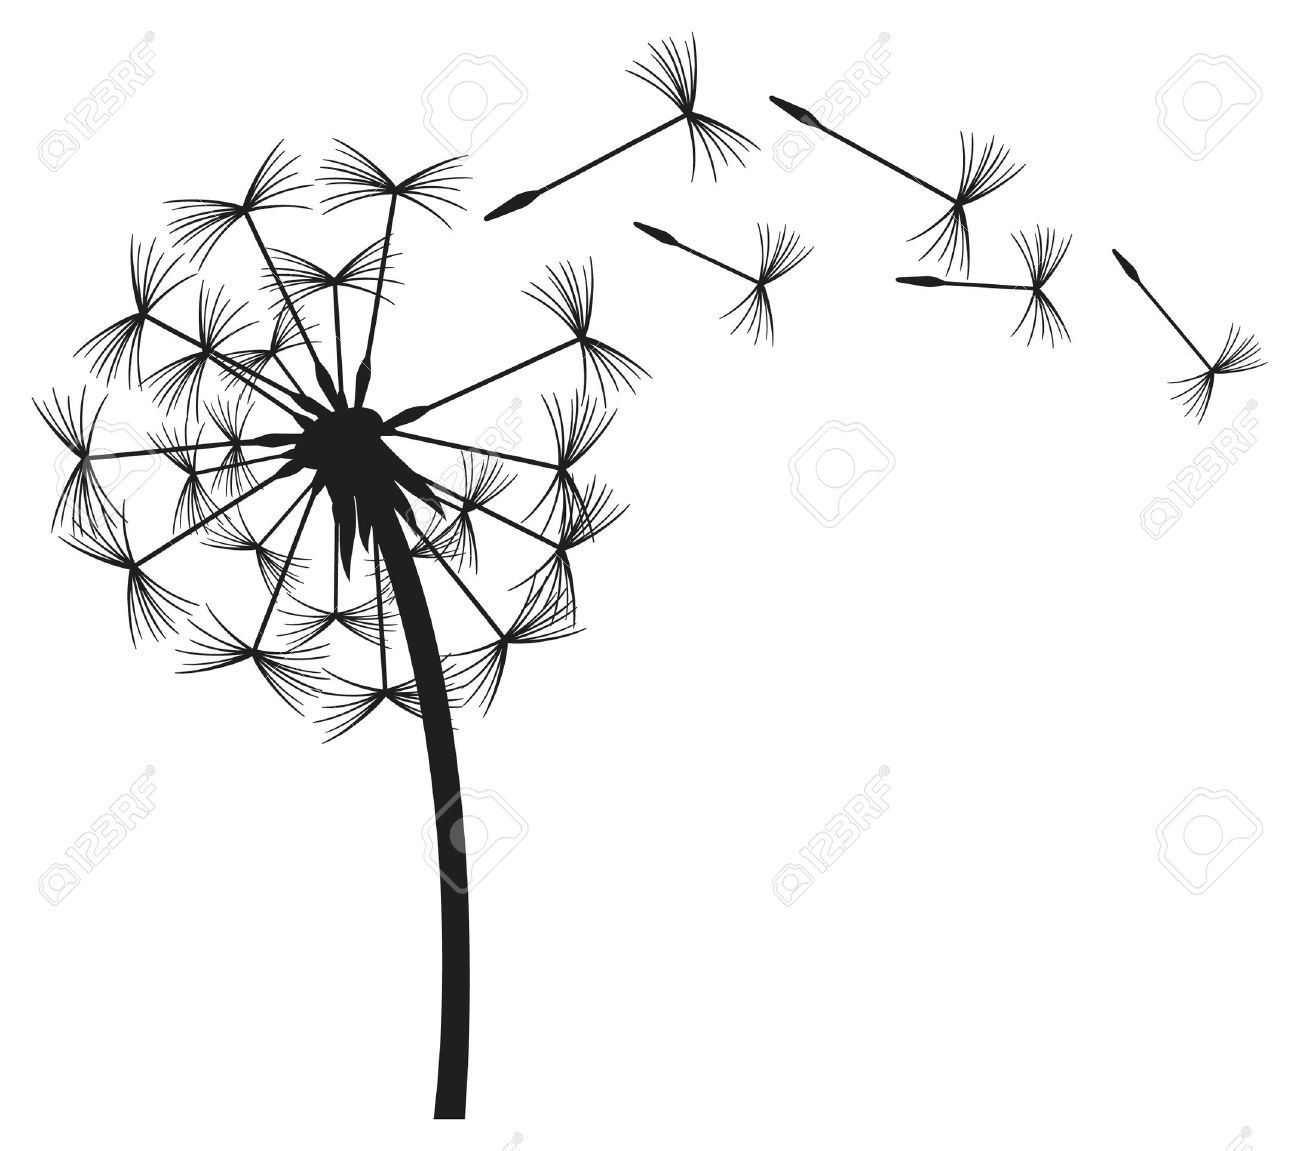 1300x1151 Blowing Dandelion Stock Vector Illustration And Royalty Free